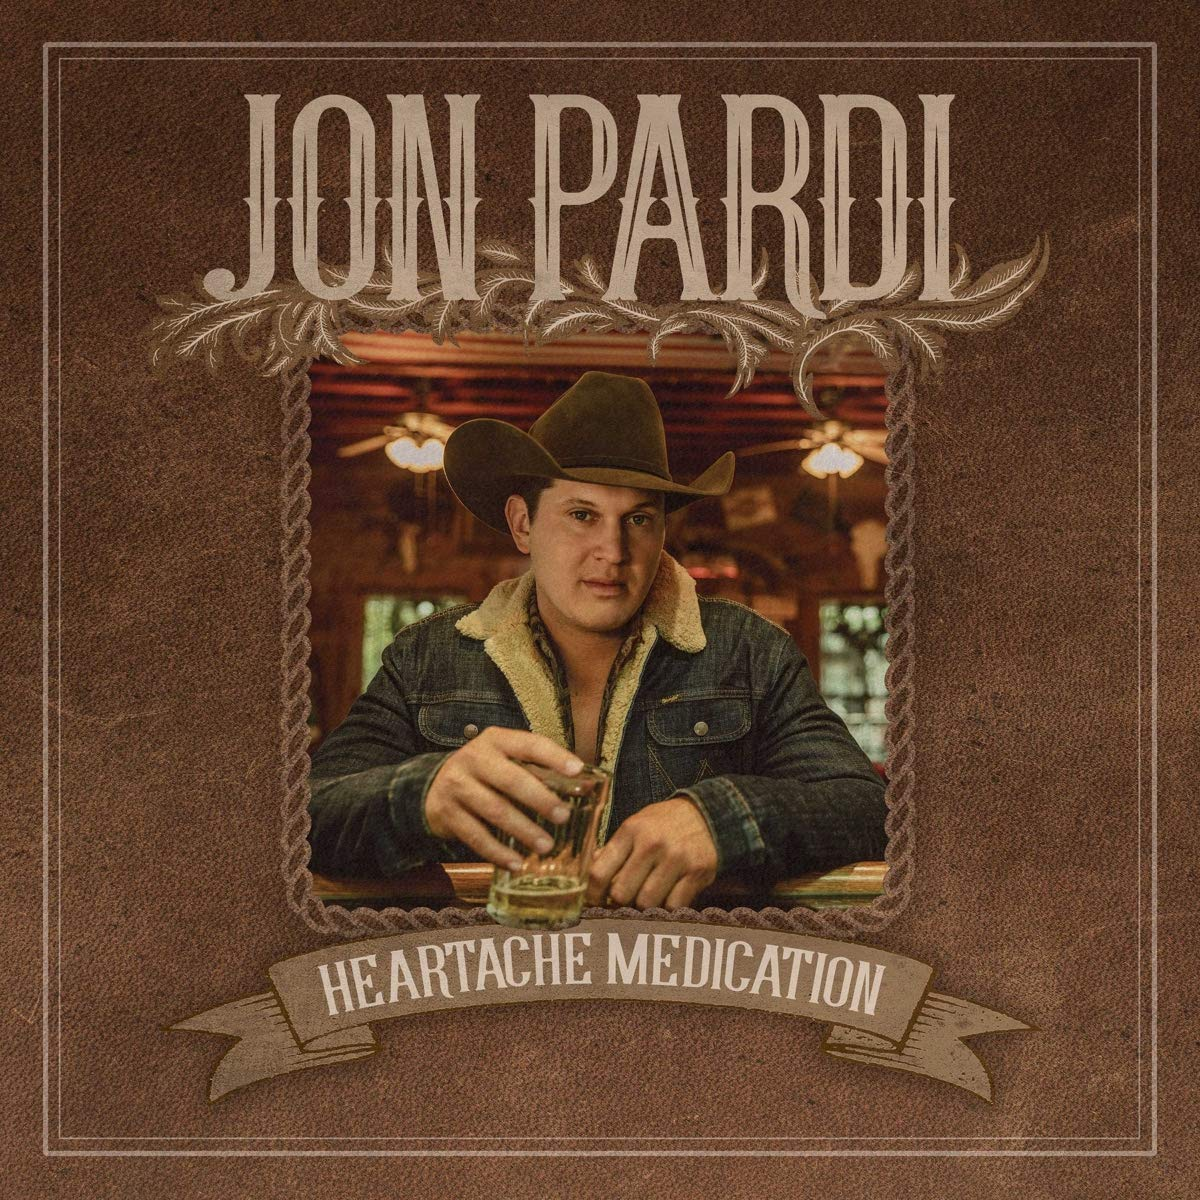 Jon Pardi - Heartache Medication (Deluxe Version)